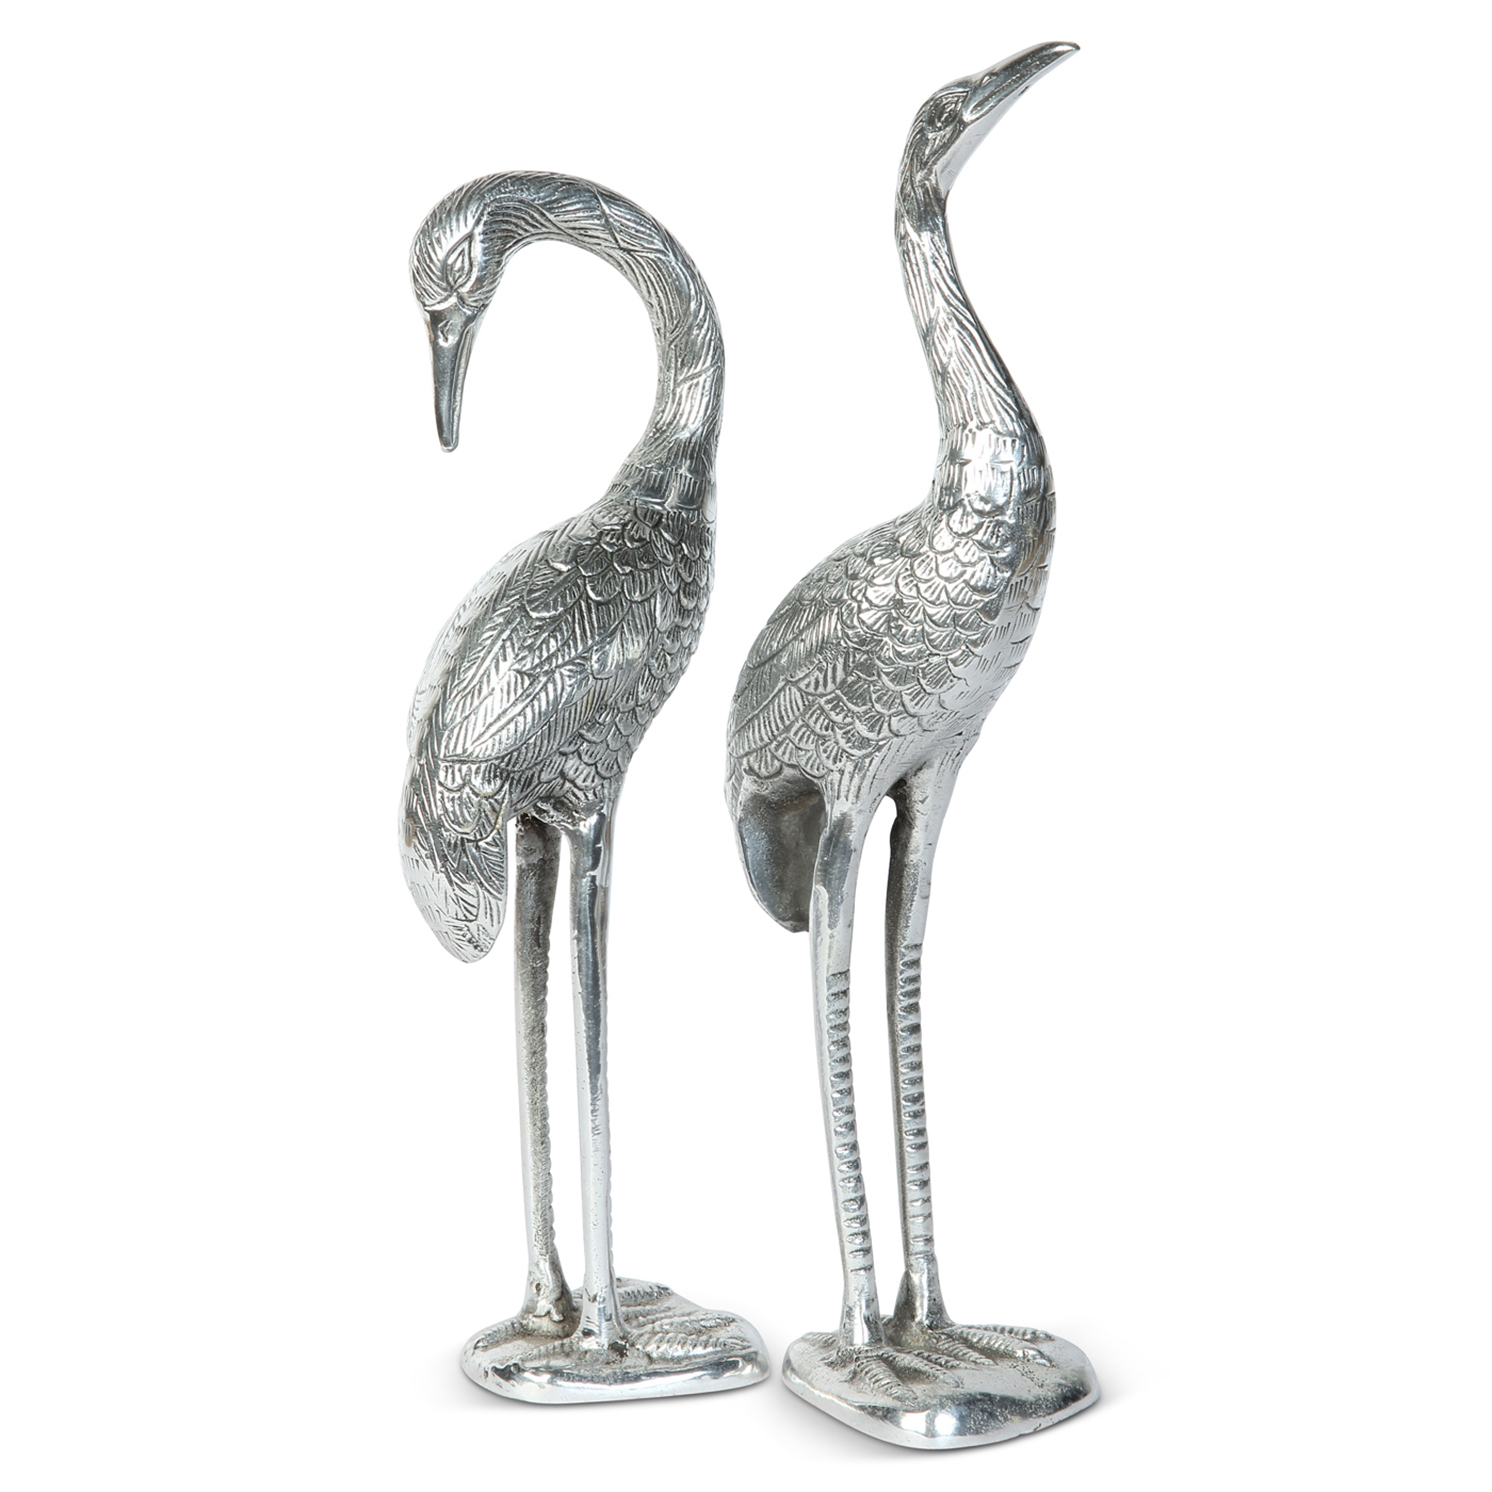 Culinary Concepts – Pair of Crane Ornaments in Box